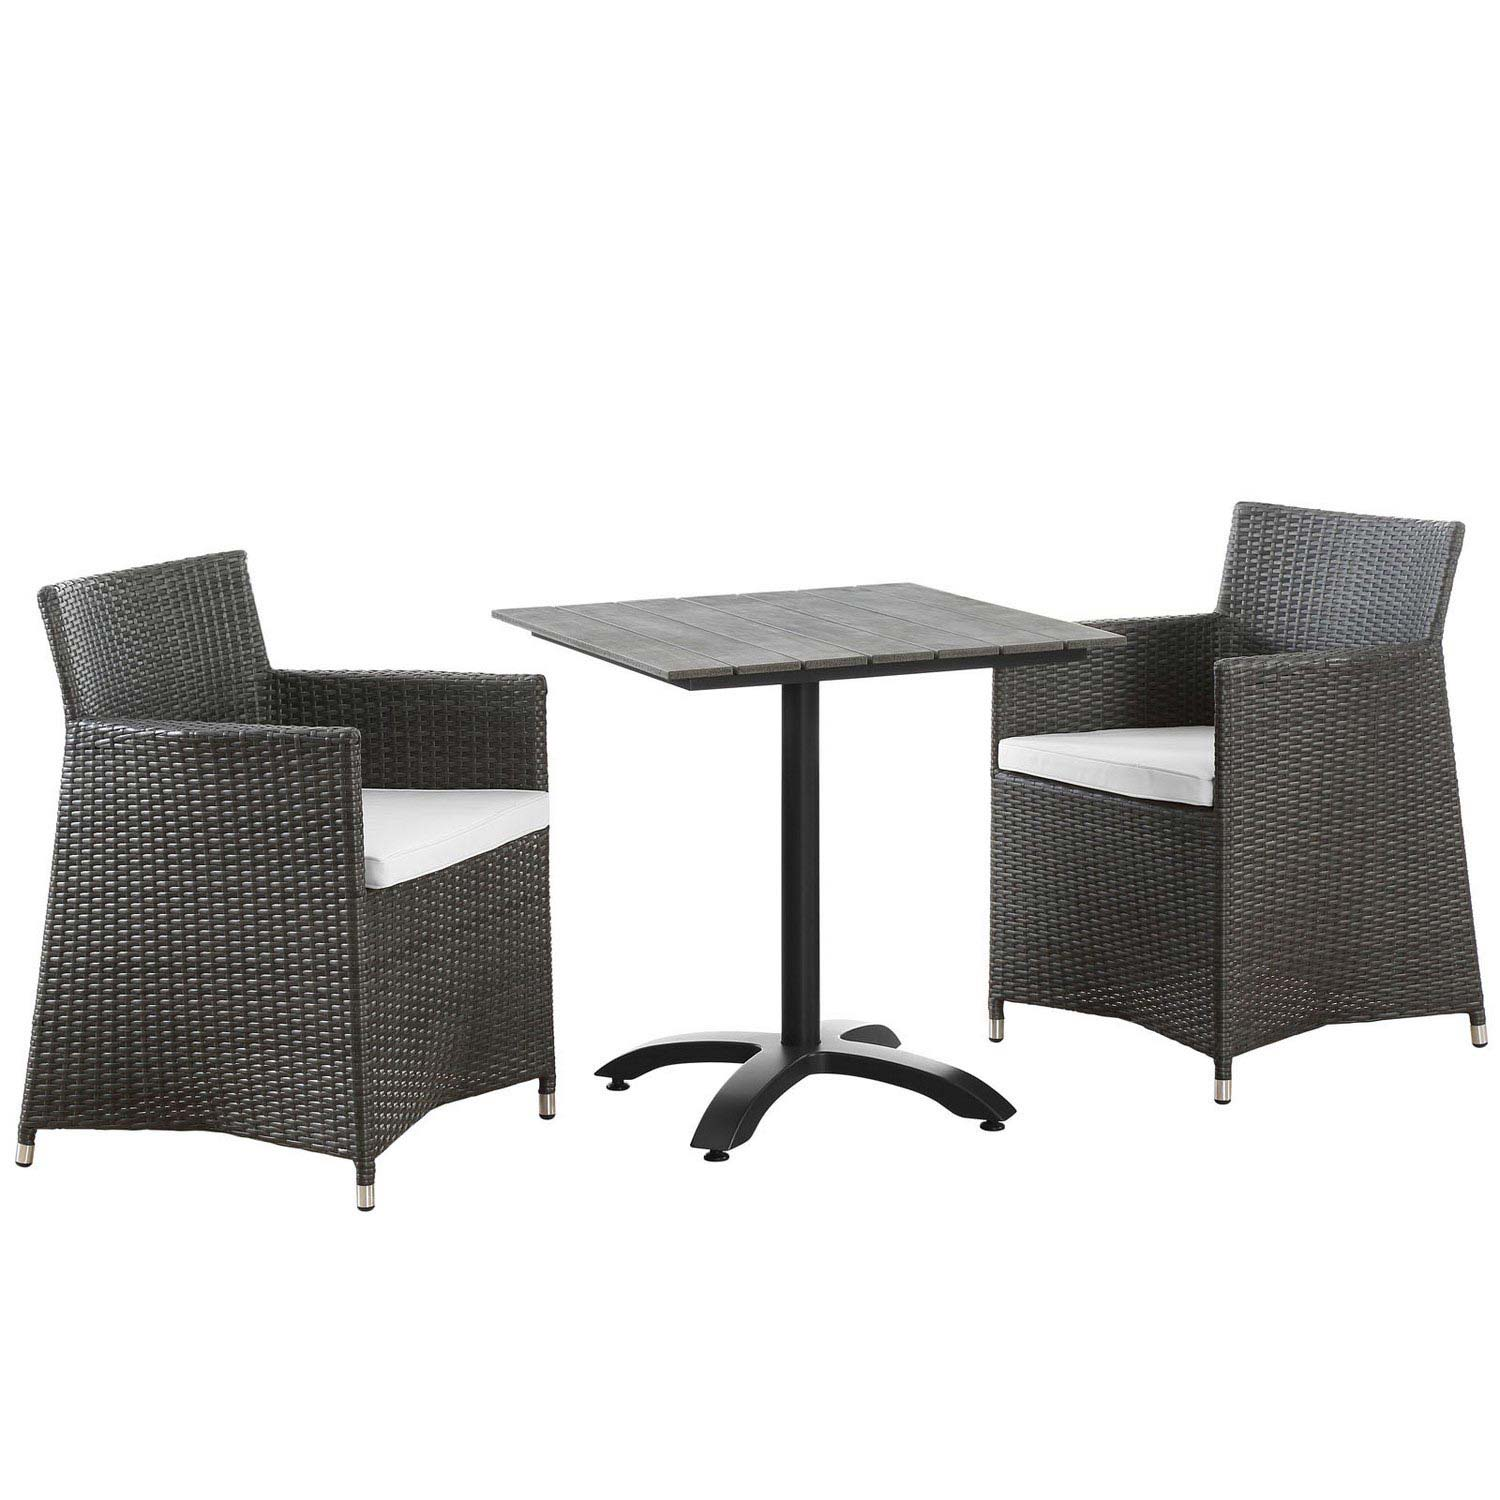 Modway Junction 3 Piece Outdoor Patio Dining Set - Brown/White